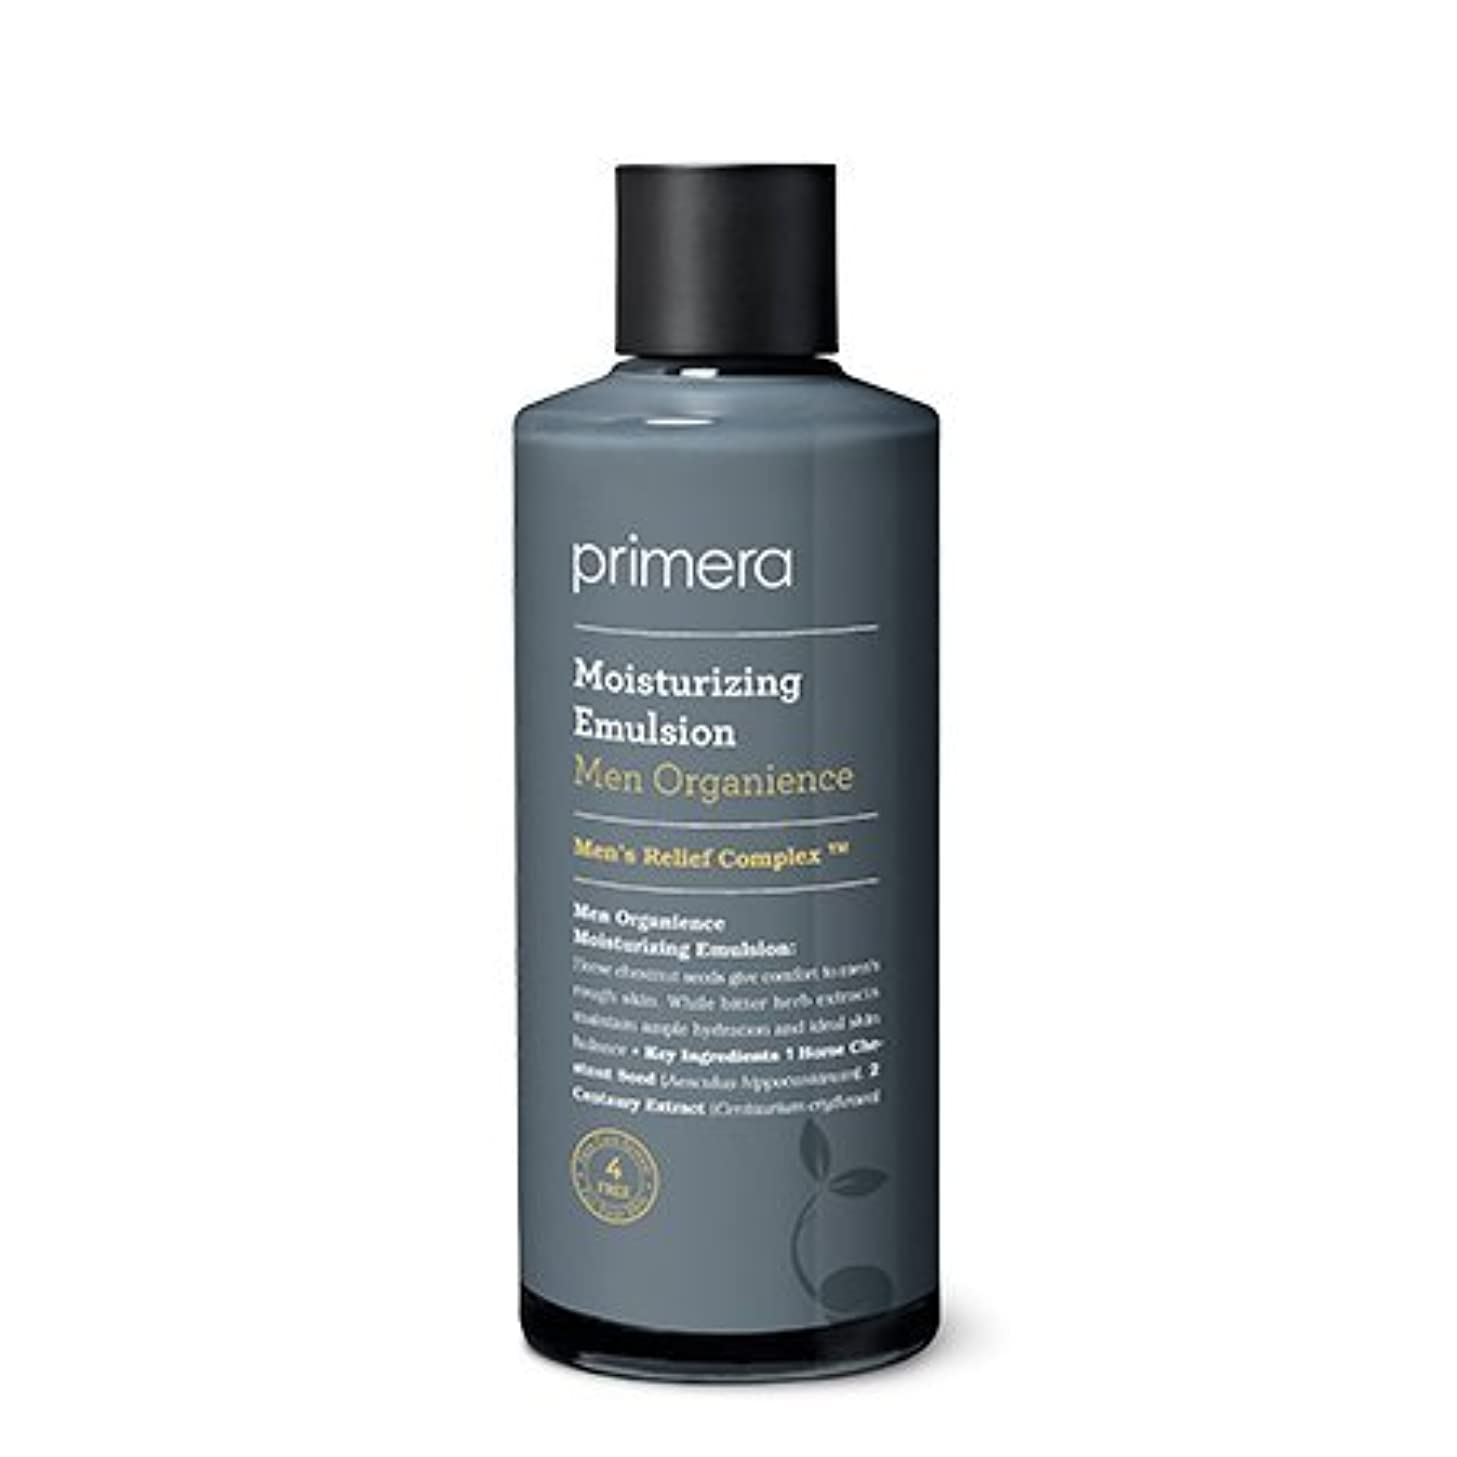 【Primera】Men Organience Moisturizing Emulsion - 150ml (韓国直送品) (SHOPPINGINSTAGRAM)